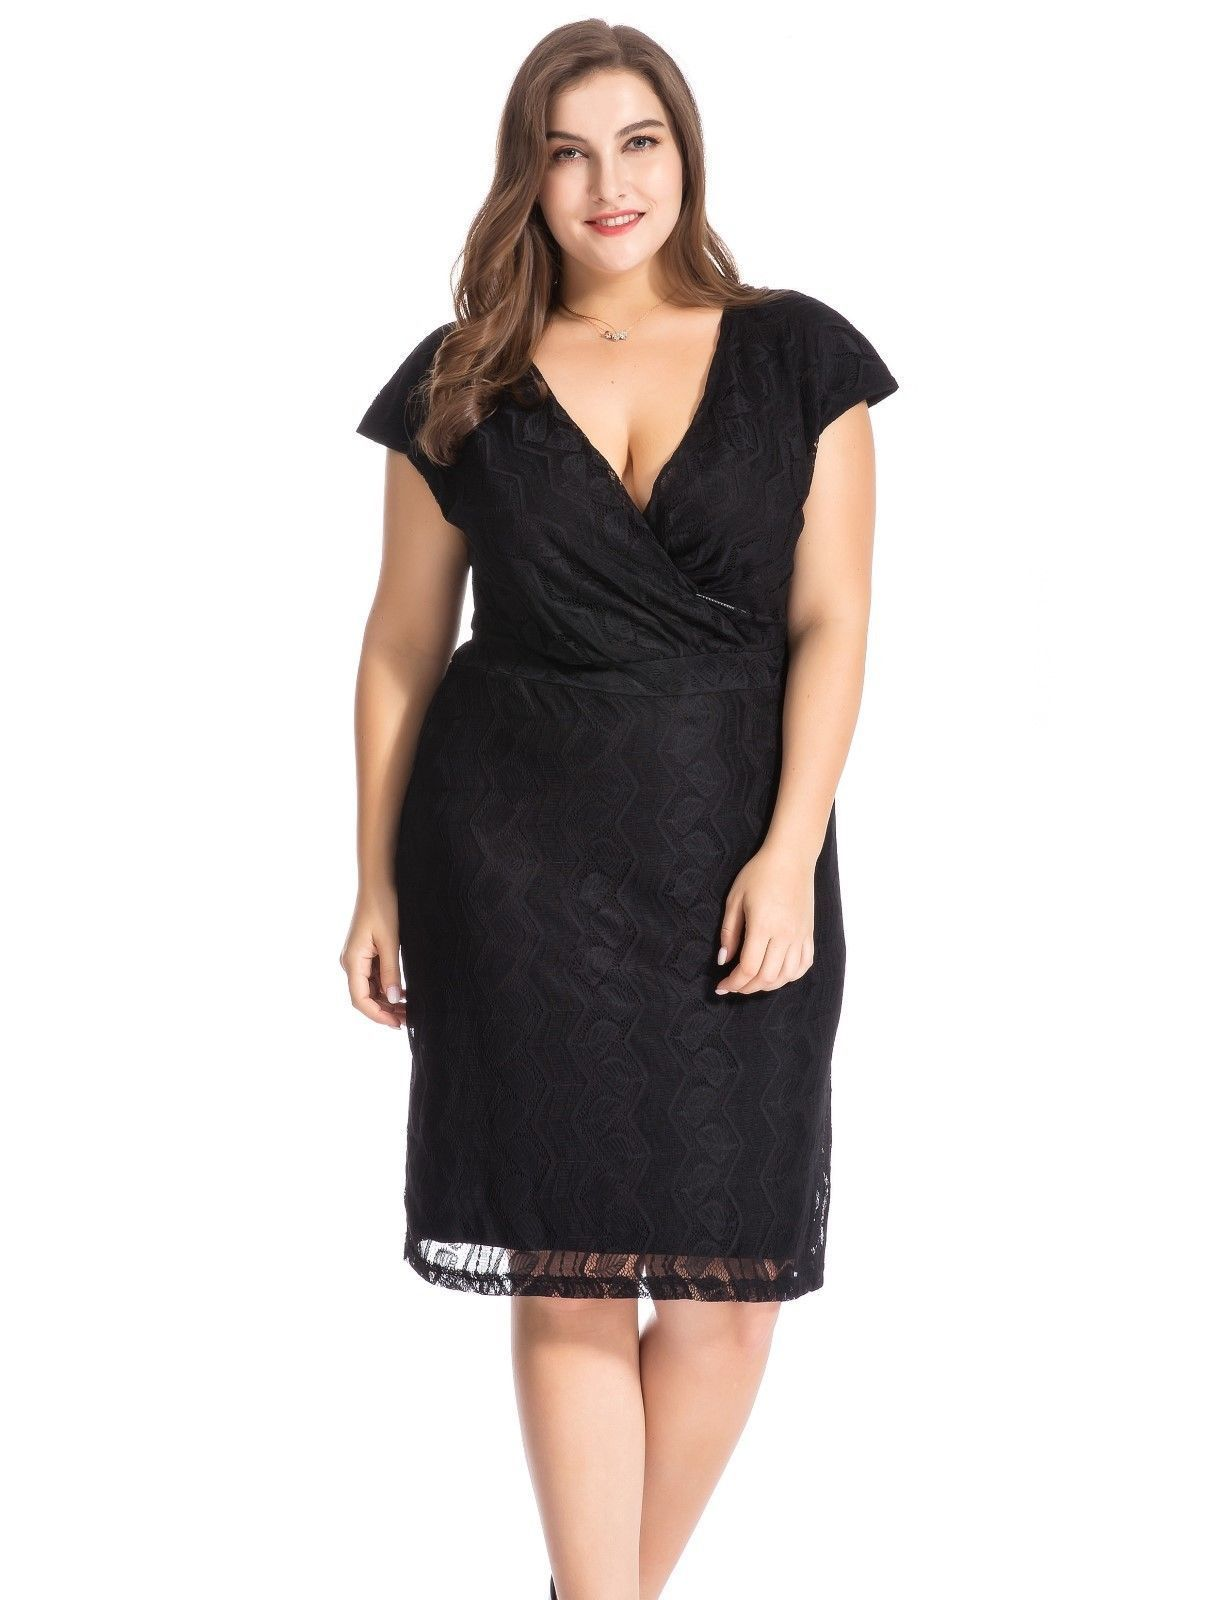 1dddcab735f Chicwe Women s Lined Luxury Lace Plus Size Dress With Cross-Over V Neck Size